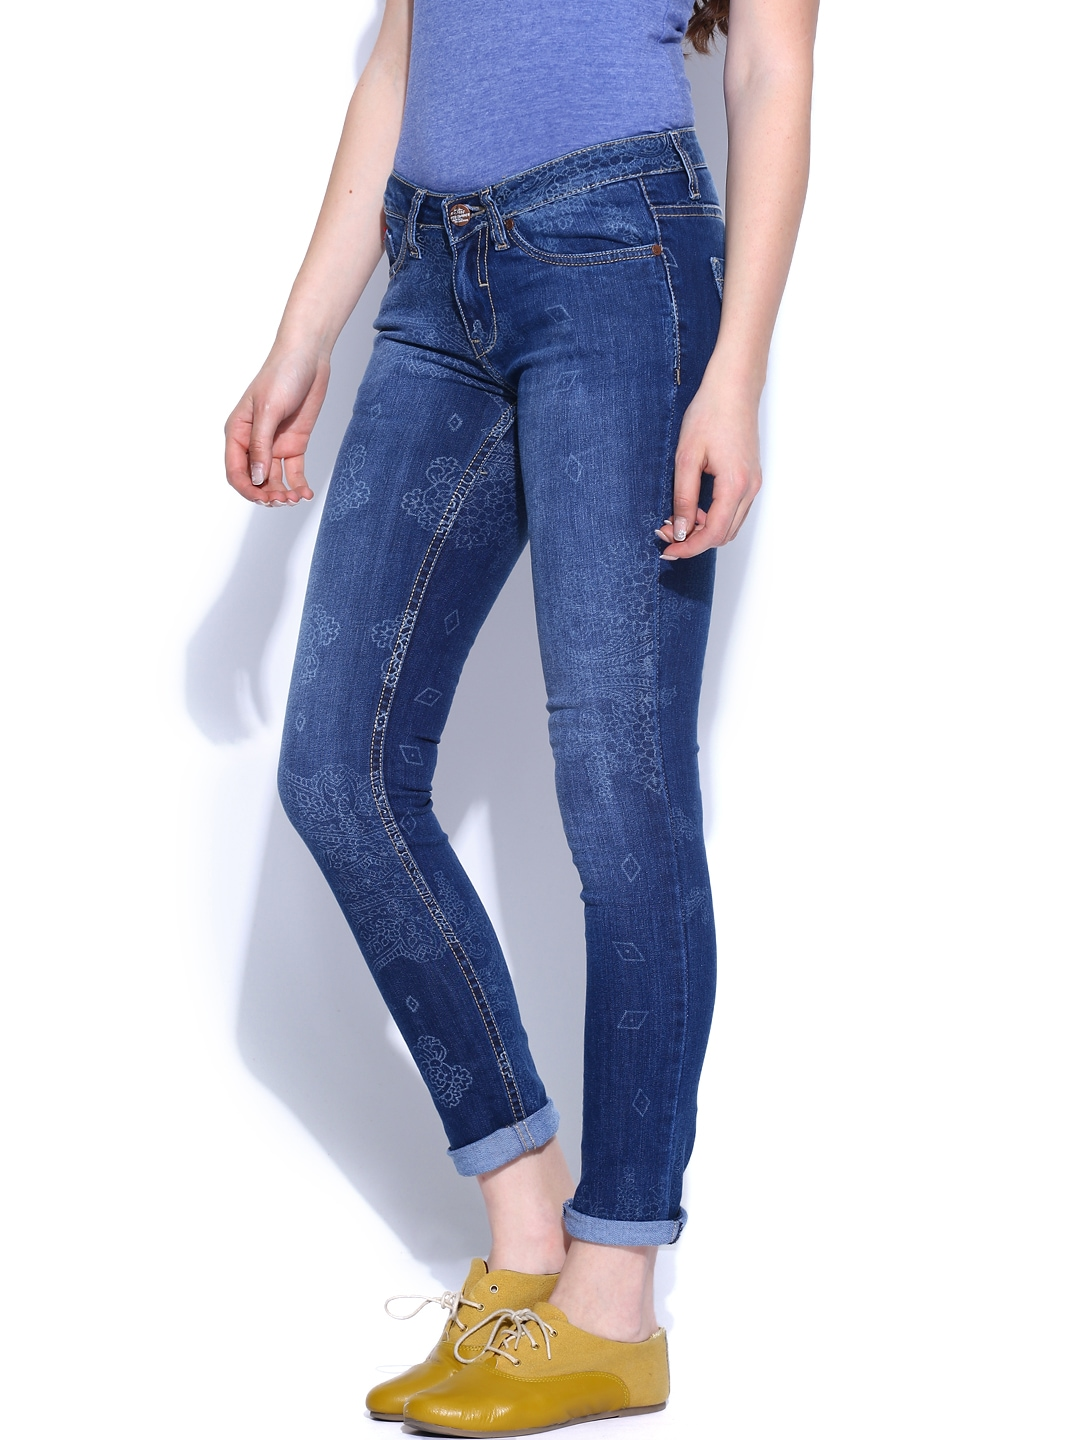 lee cooper jeans for women - photo #19